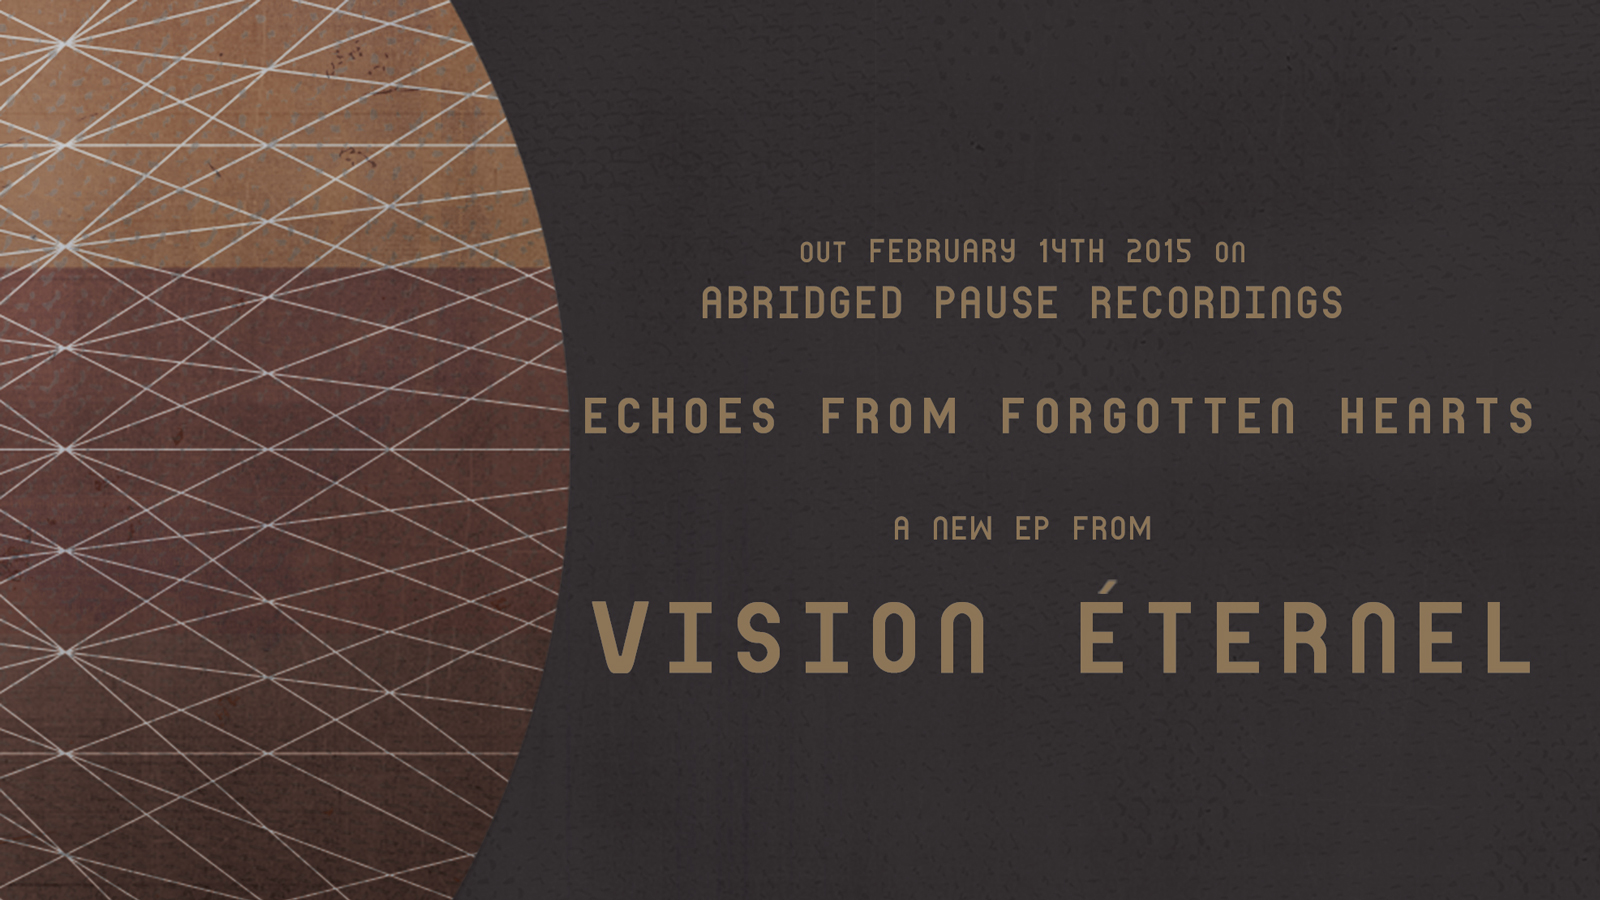 Vision Éternel Echoes From Forgotten Hearts EP Is Released